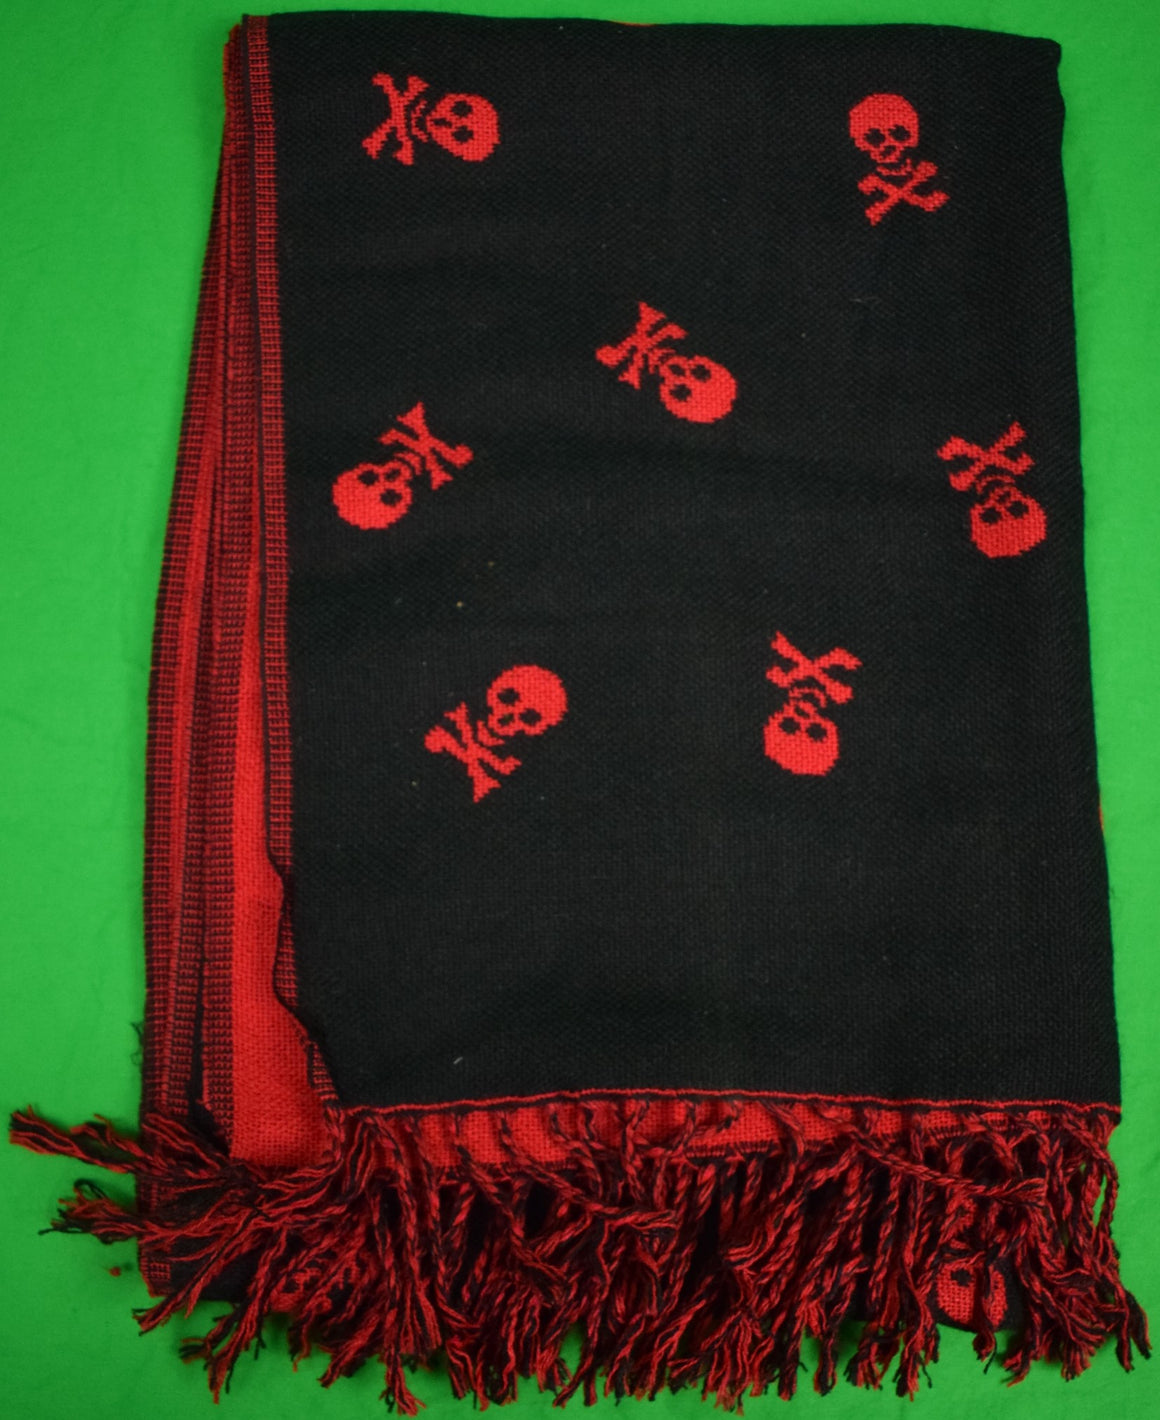 Skull & Crossbone Black & Red Scarf